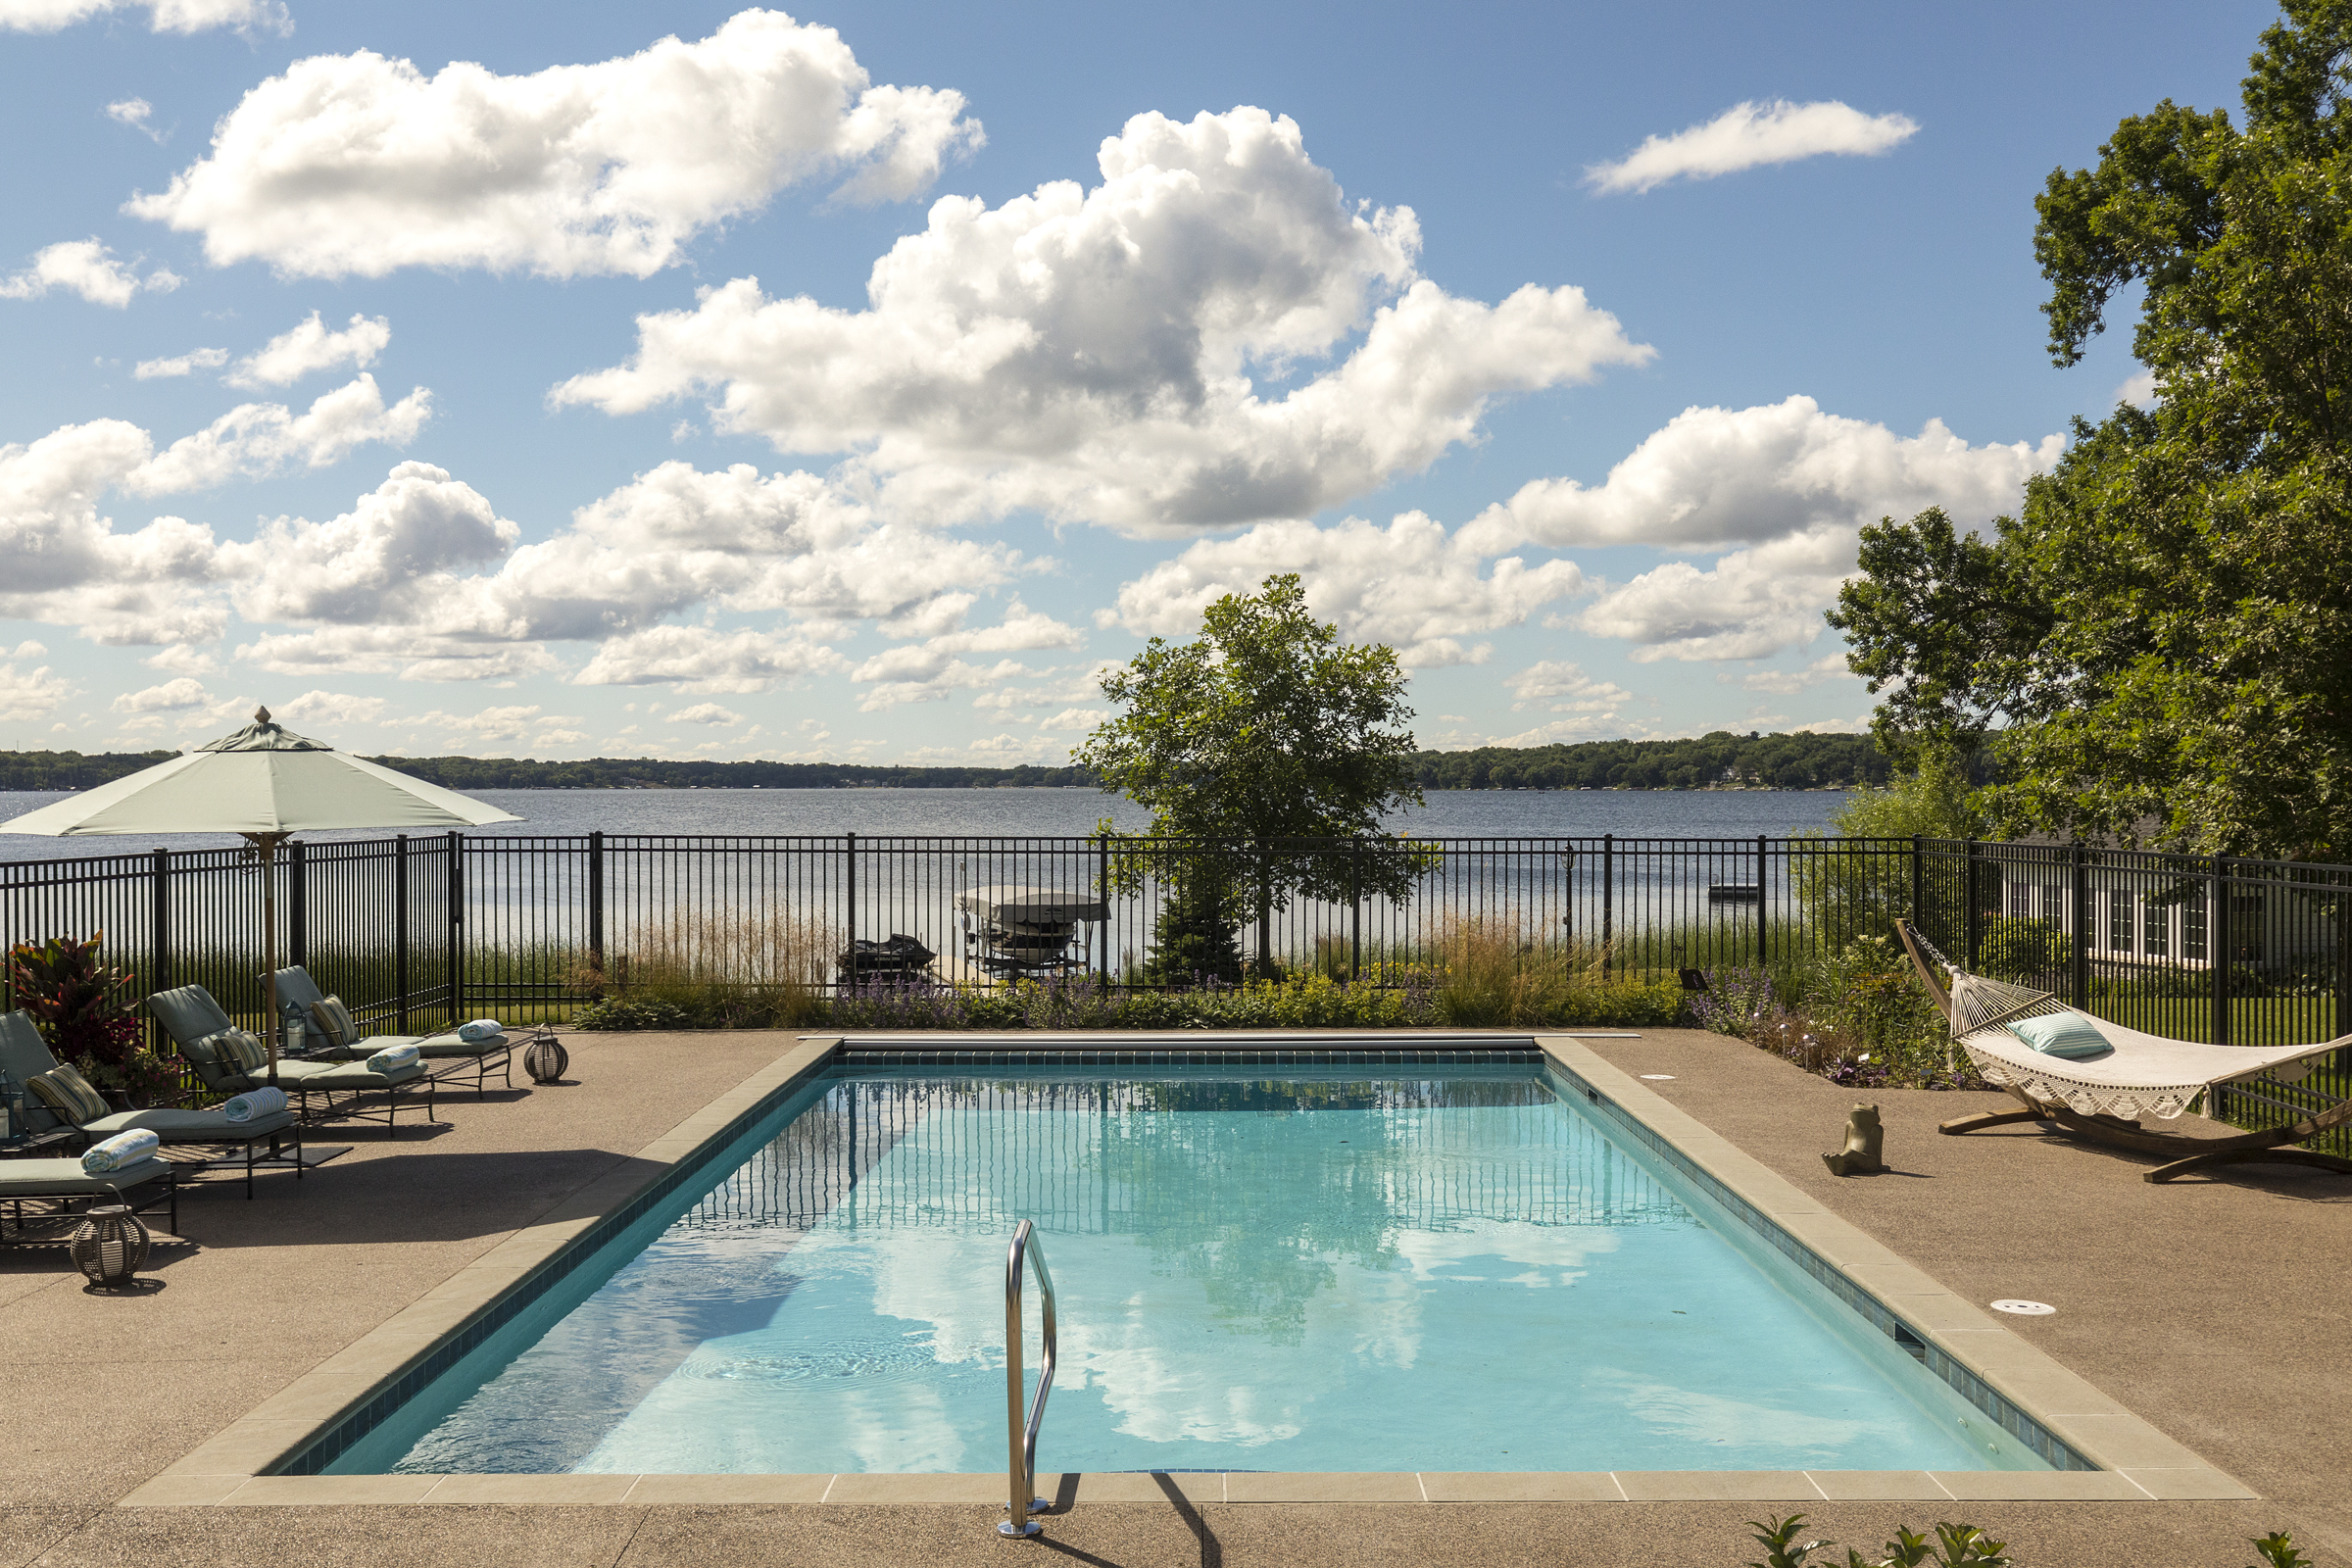 Lake view from pool, designed by NewStudio Architecture